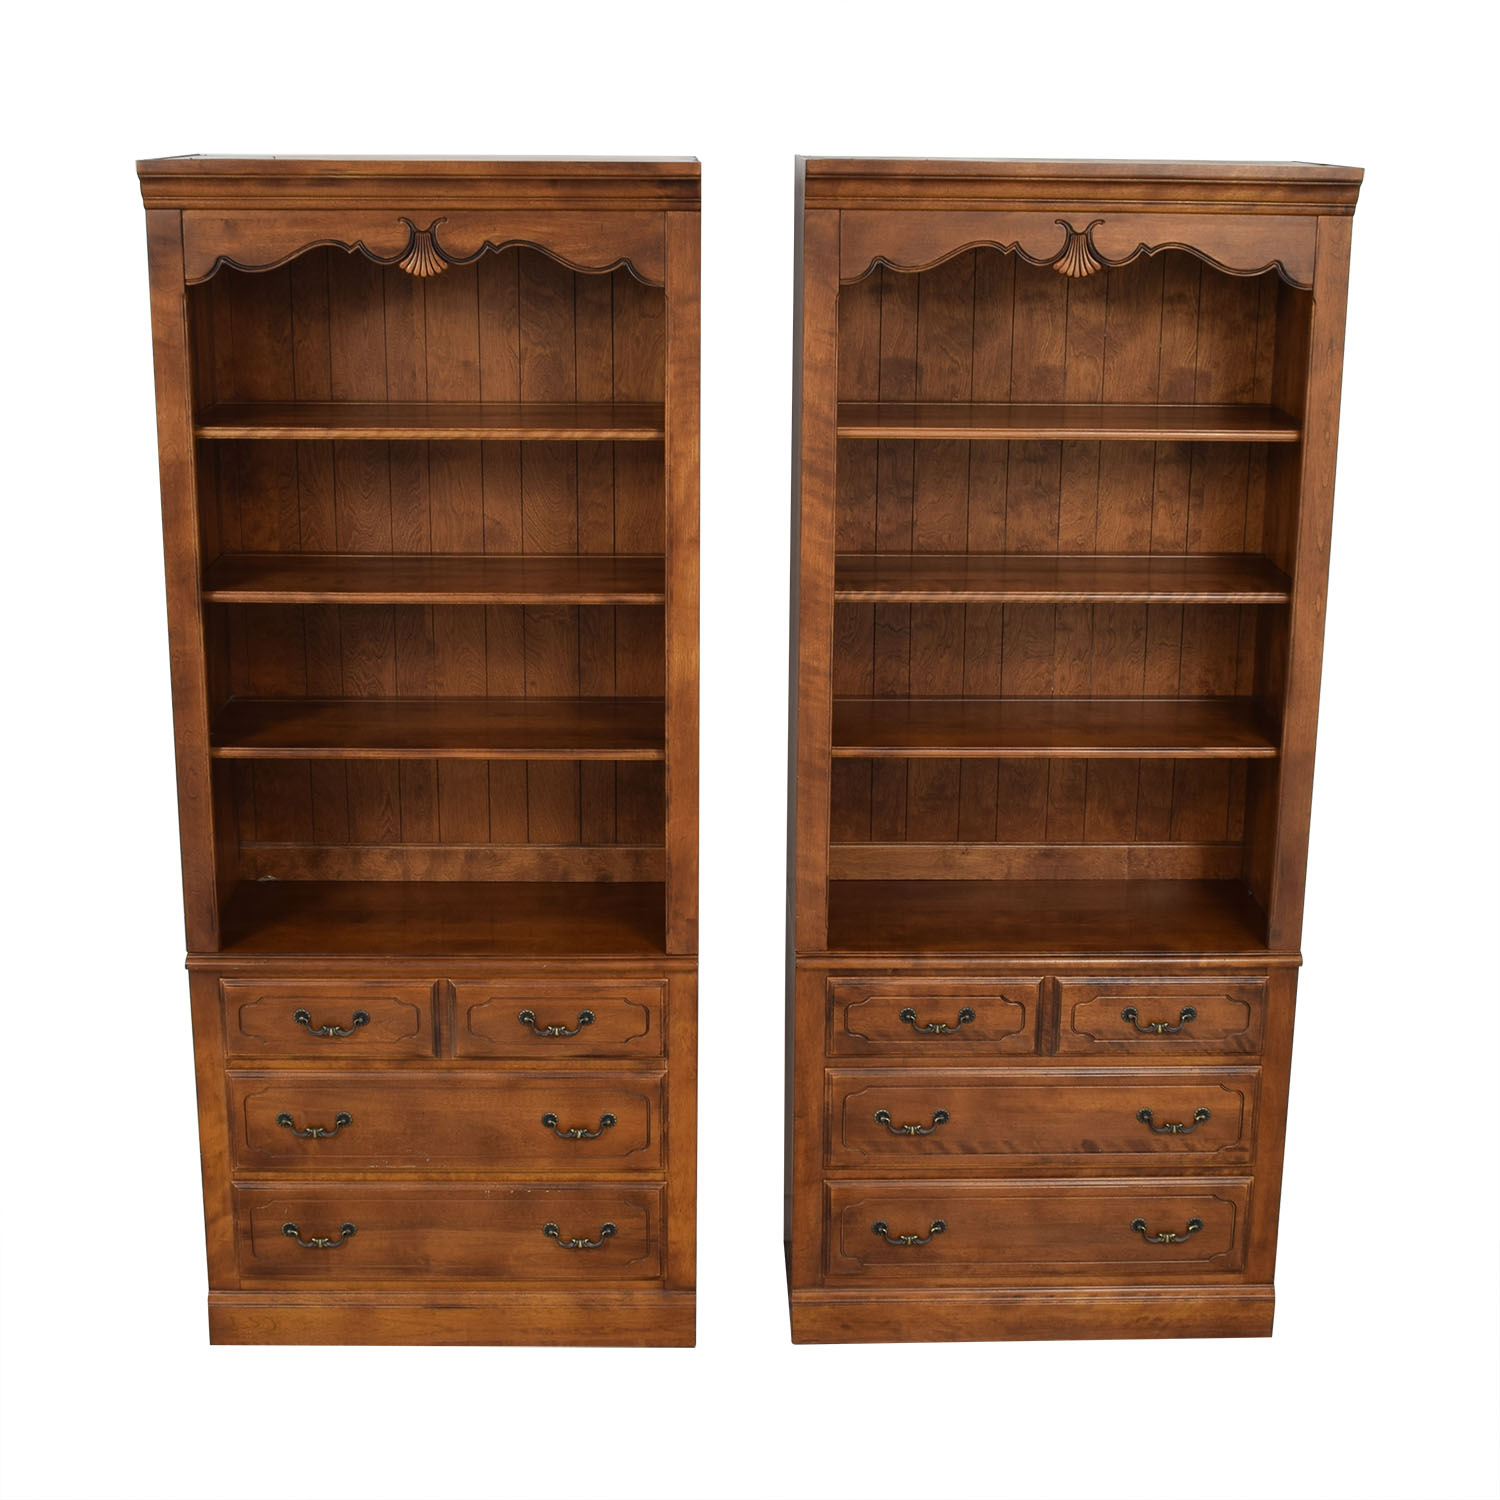 Ethan Allen Ethan Allen Chest with Bookcase Hutch nyc